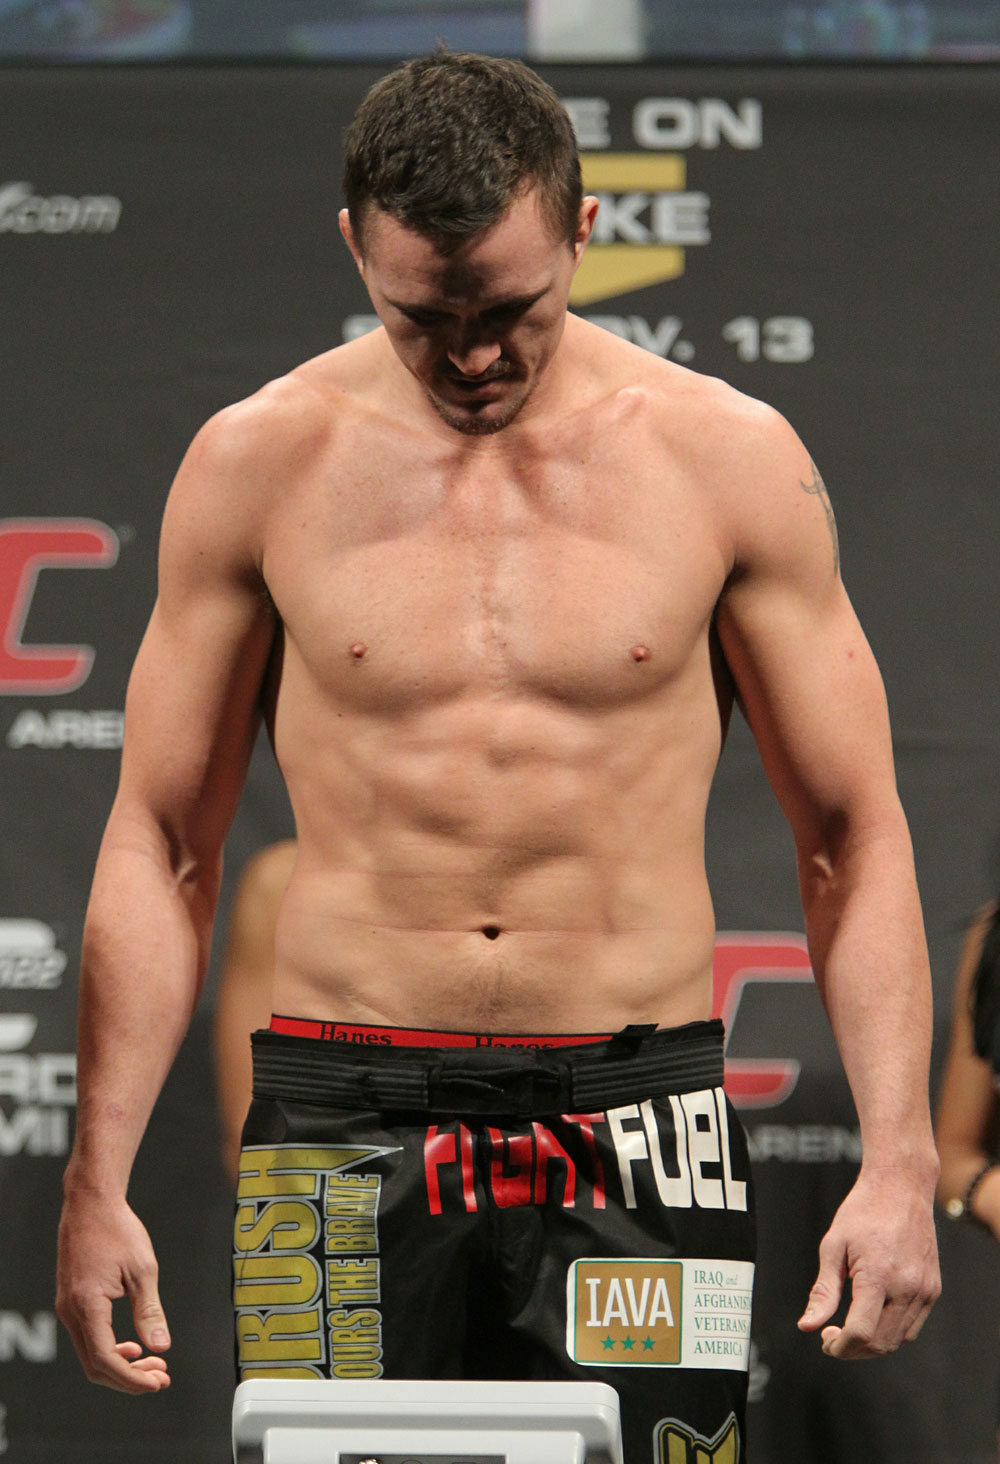 Kyle Noke weighs in at 185 lbs at the UFC 122 weigh-in at the Kšnig Pilsener Arena on November 12,  2010 in Oberhausen, Germany.  (Photo by Josh Hedges/Zuffa LLC/Zuffa LLC via Getty Images)